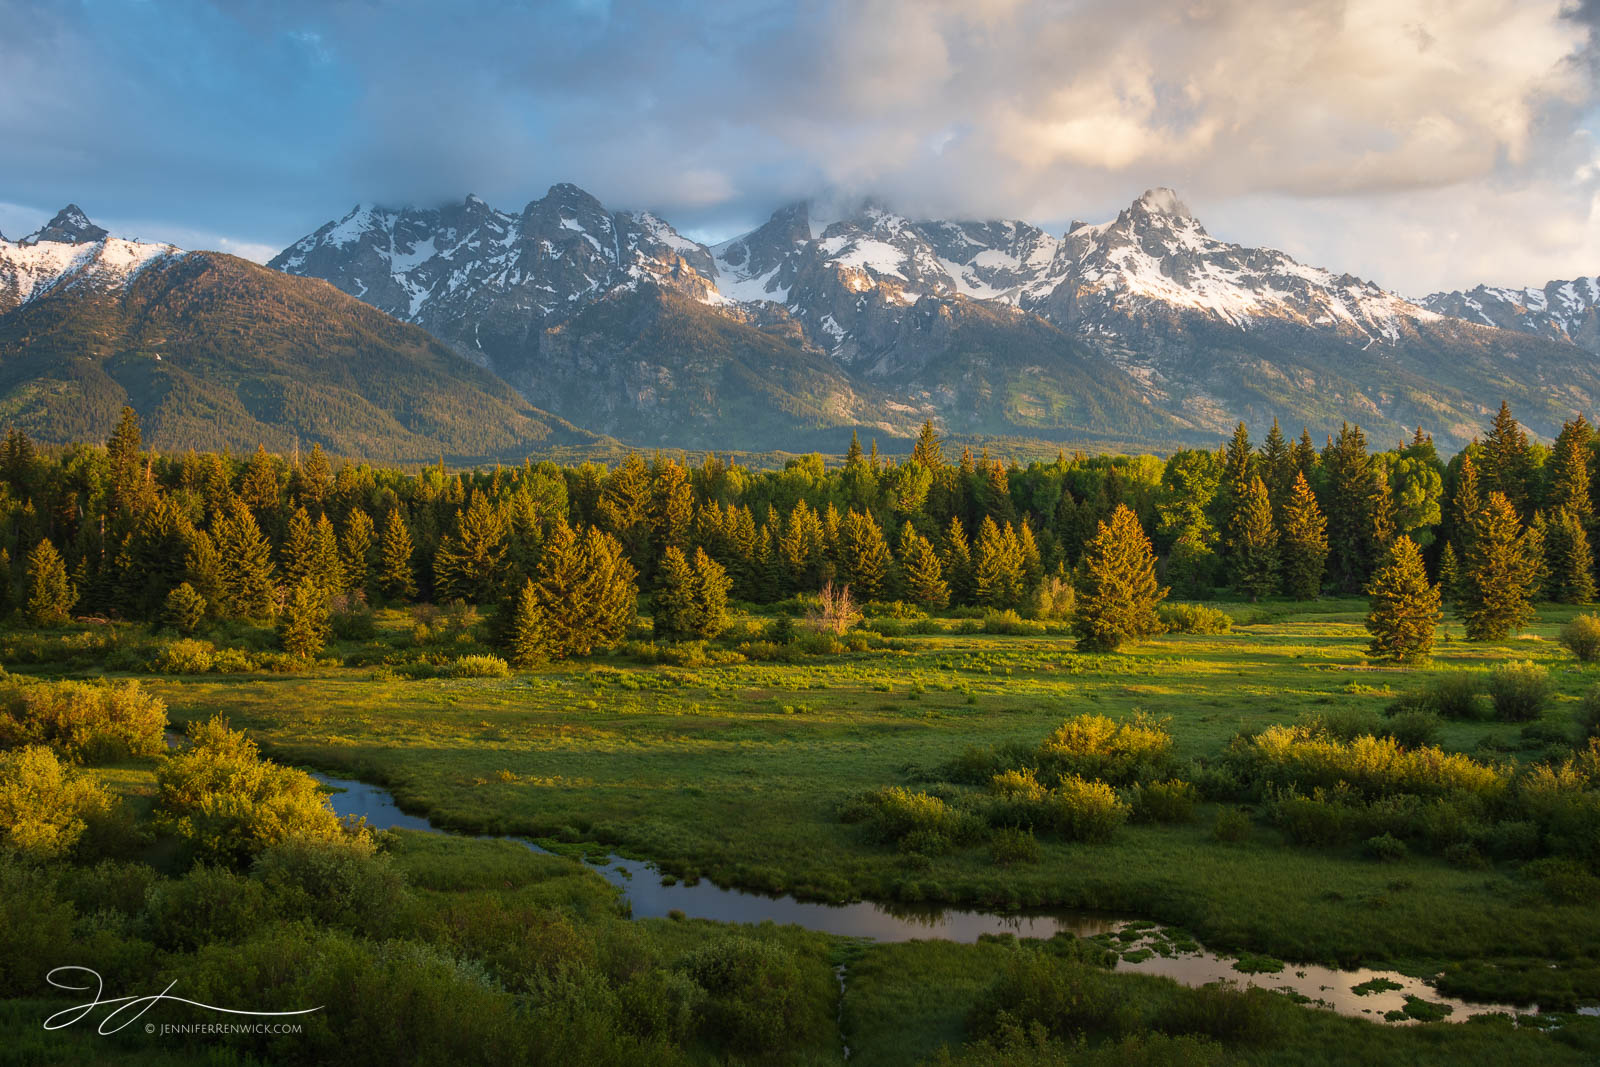 A pastoral scene unfolds during sunrise near a meadow in Grand Teton National Park.